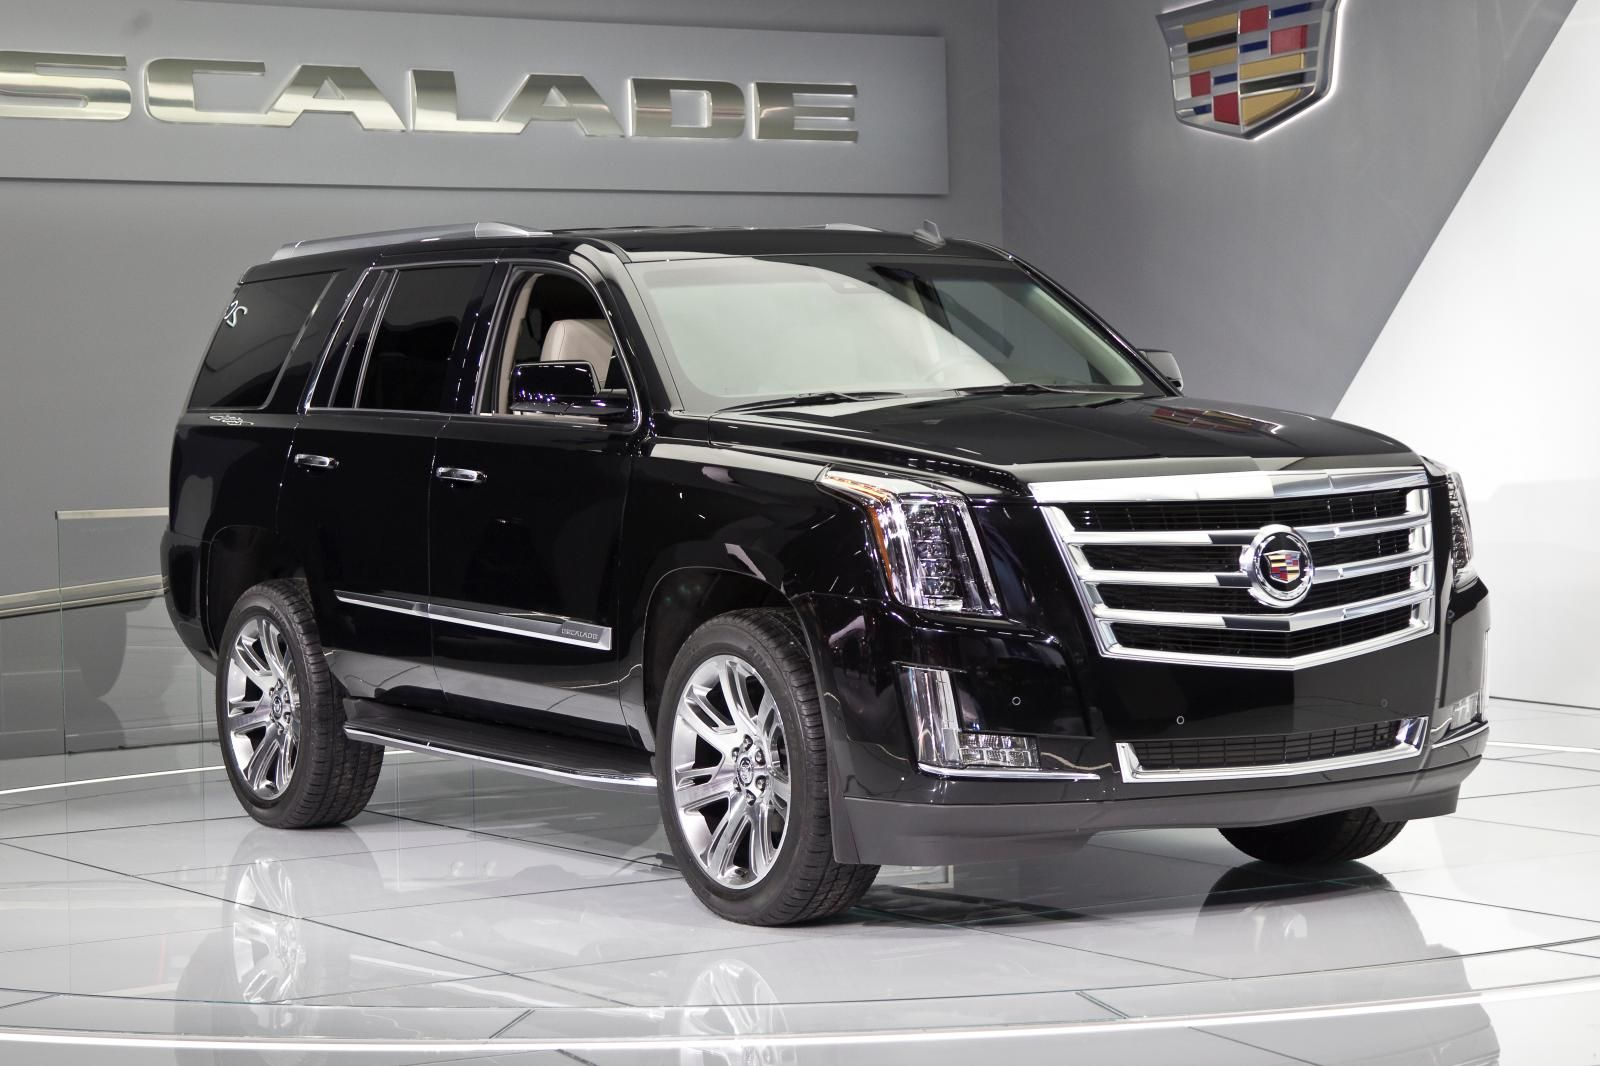 2015 cadillac escalade 2014 naias pinterest exotic cars mom and vehicles. Black Bedroom Furniture Sets. Home Design Ideas